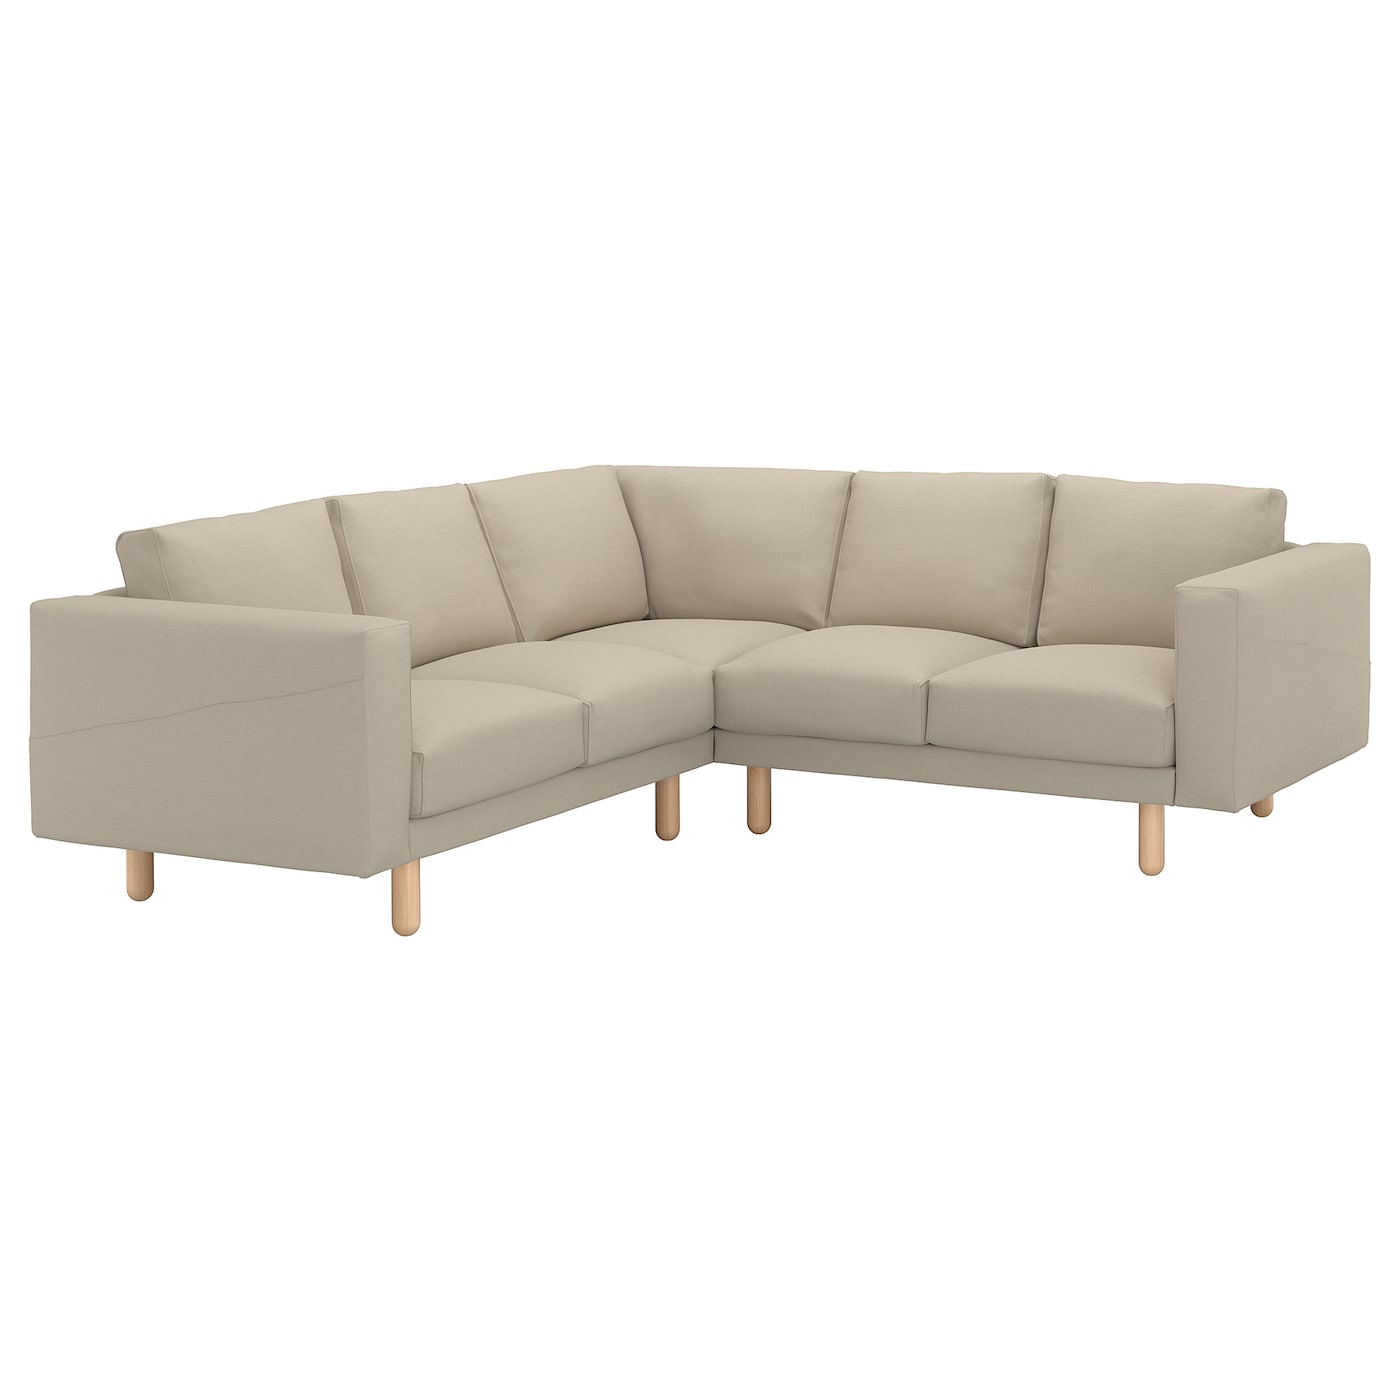 Schlafsofa ecksofa ikea  Free try out of Cor Jalis 09 Sofa from Cor in 3D, VR and AR